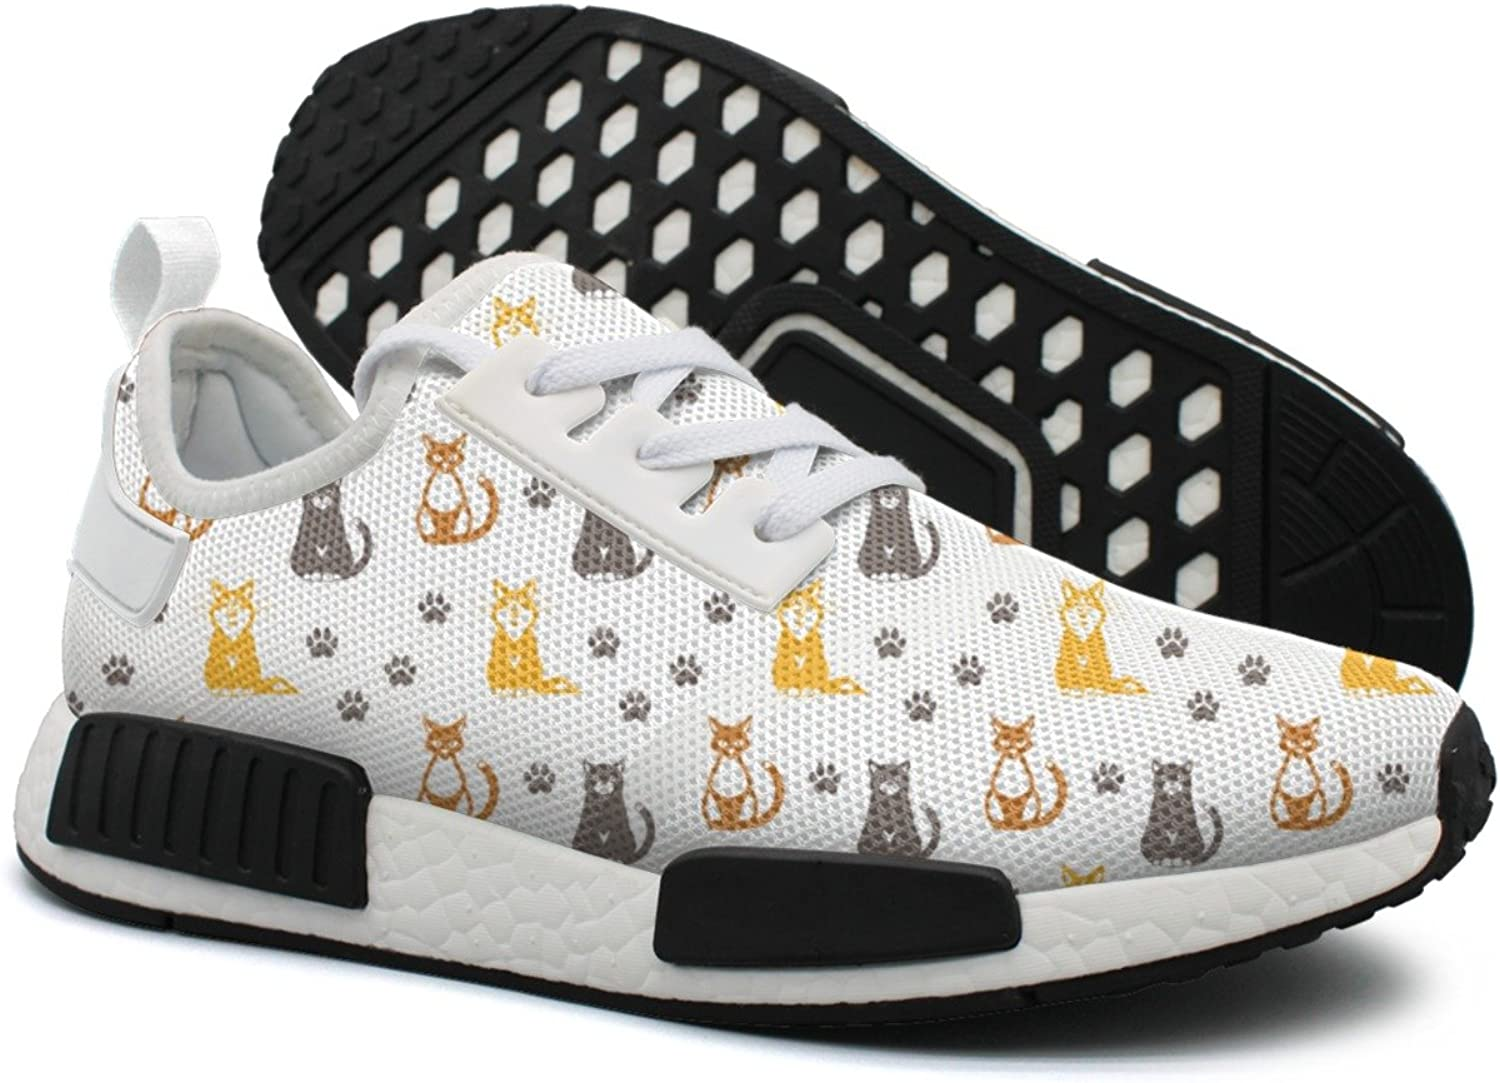 Cute Black Cats Footprint White Background Women's Exclusive Lightweight Sneakers shoes Gym Outdoor Running shoes